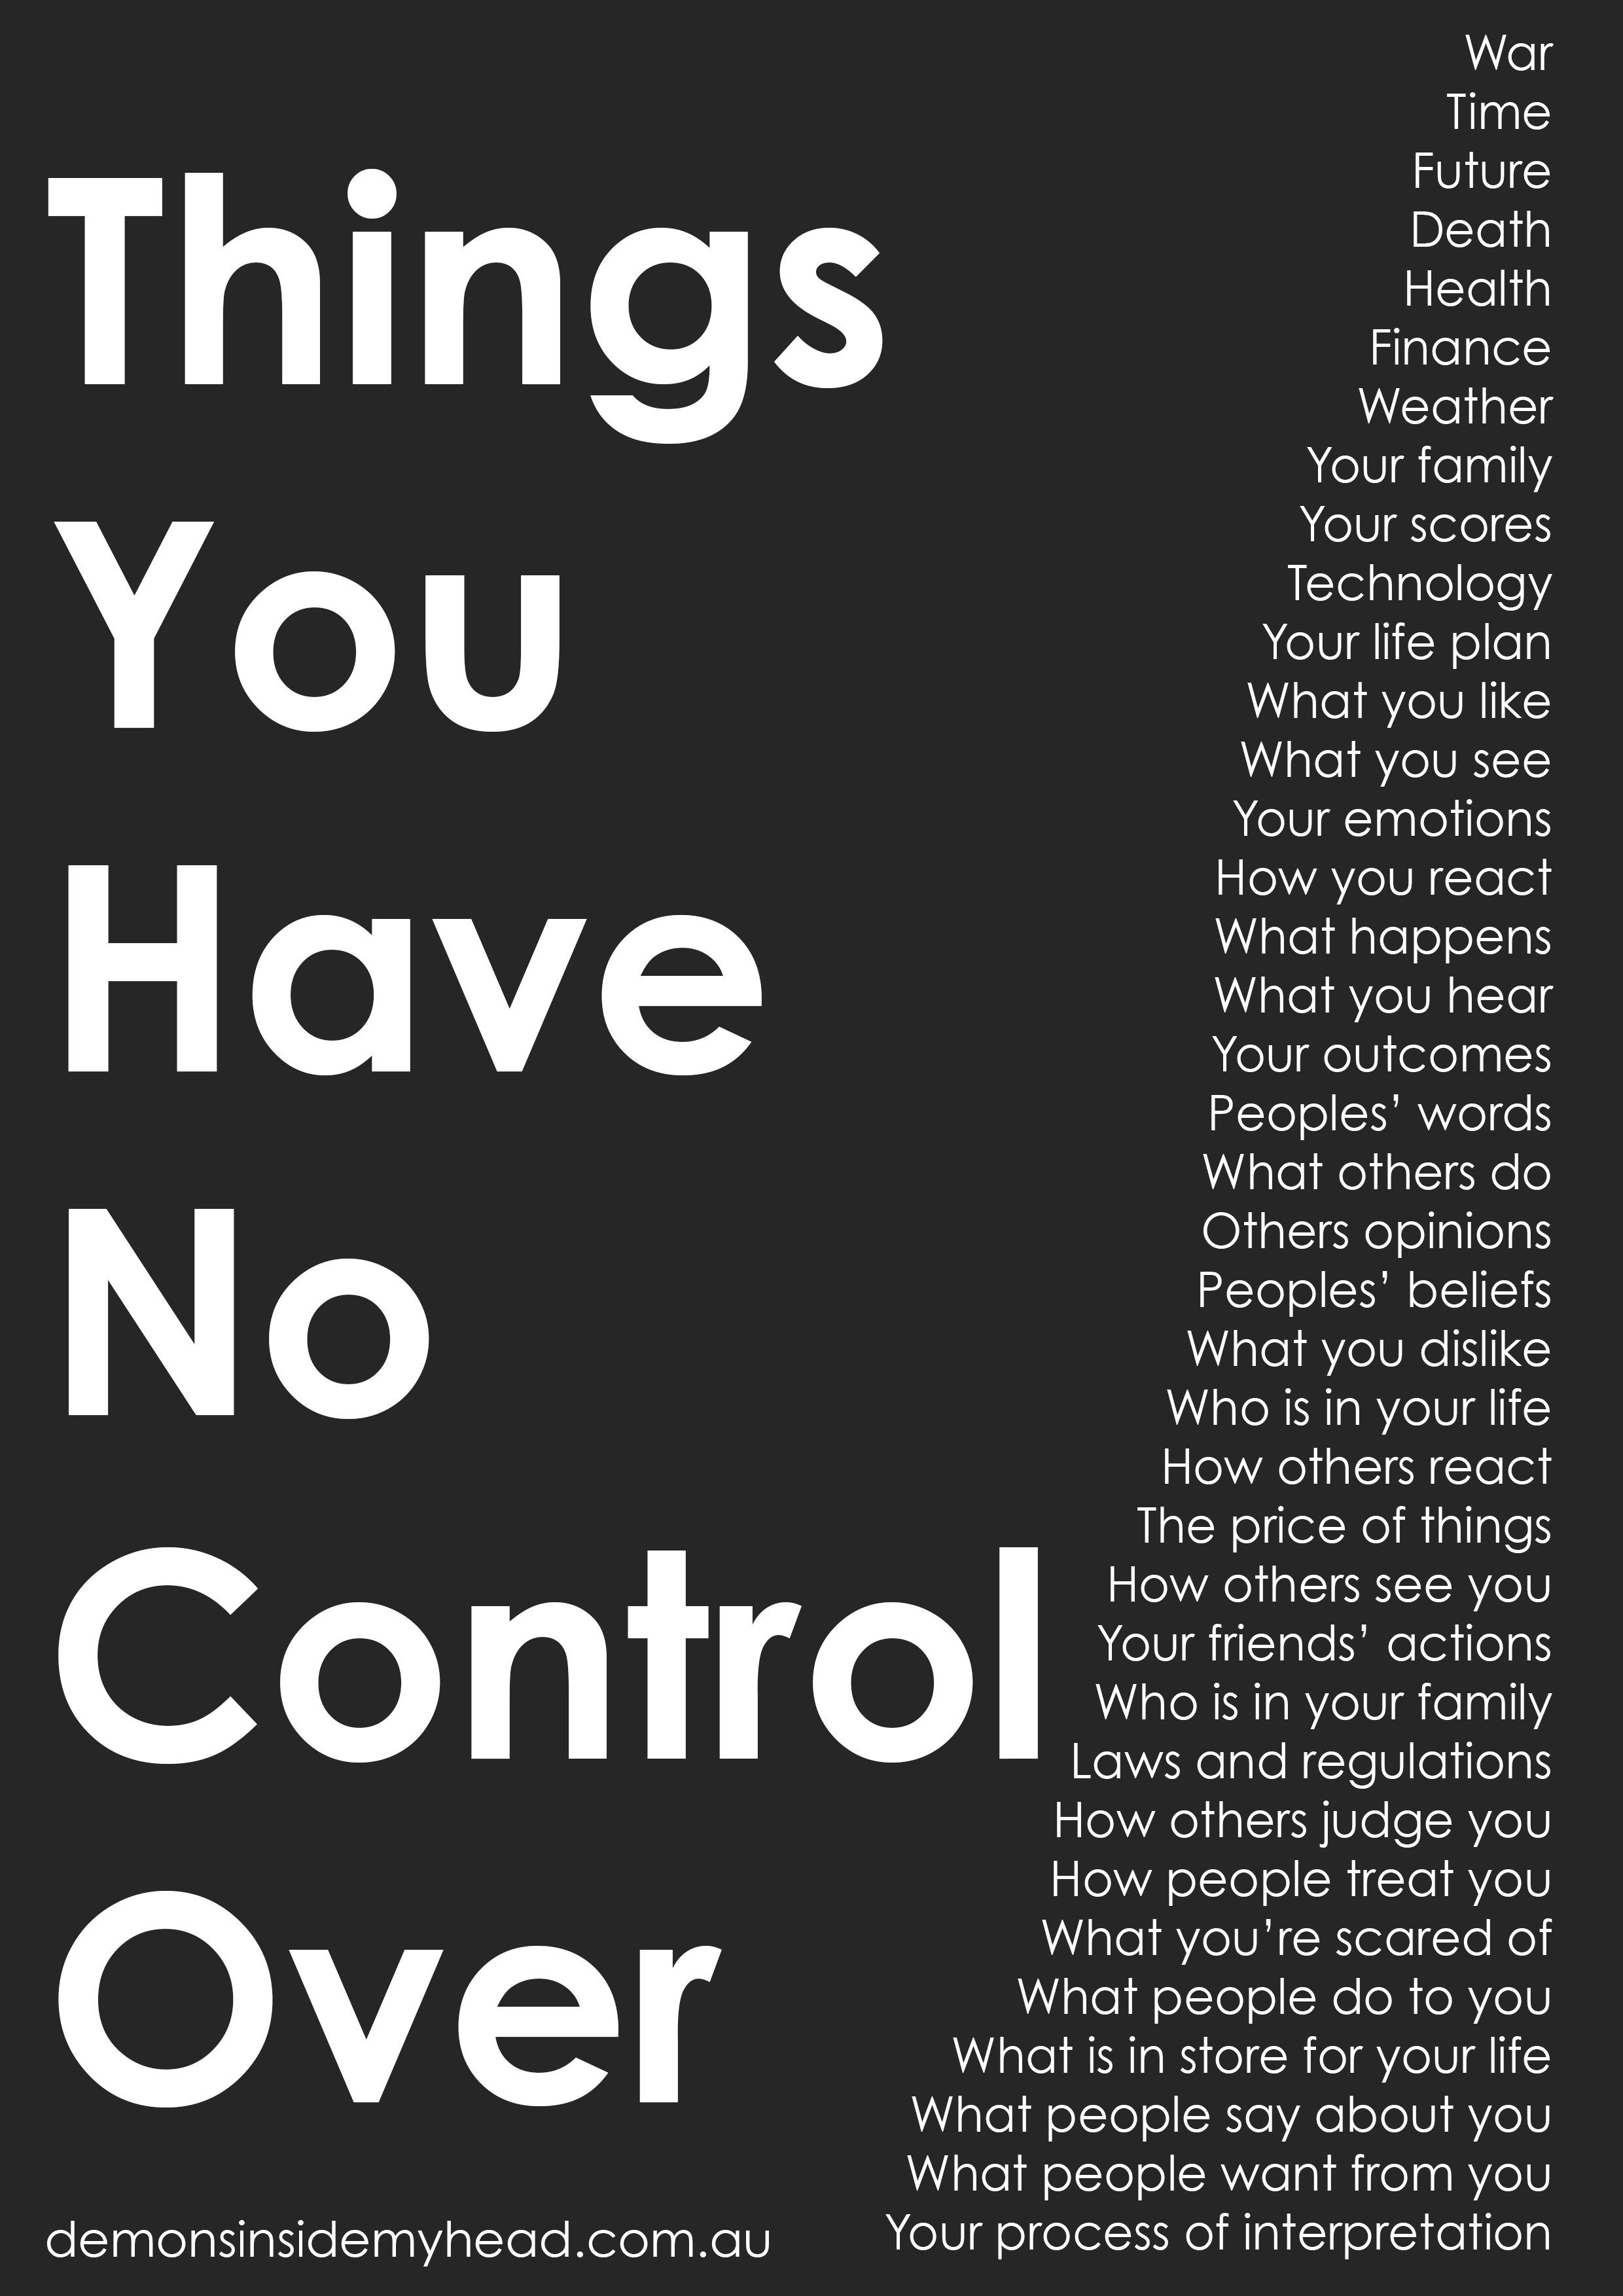 Things You Have No Control Over